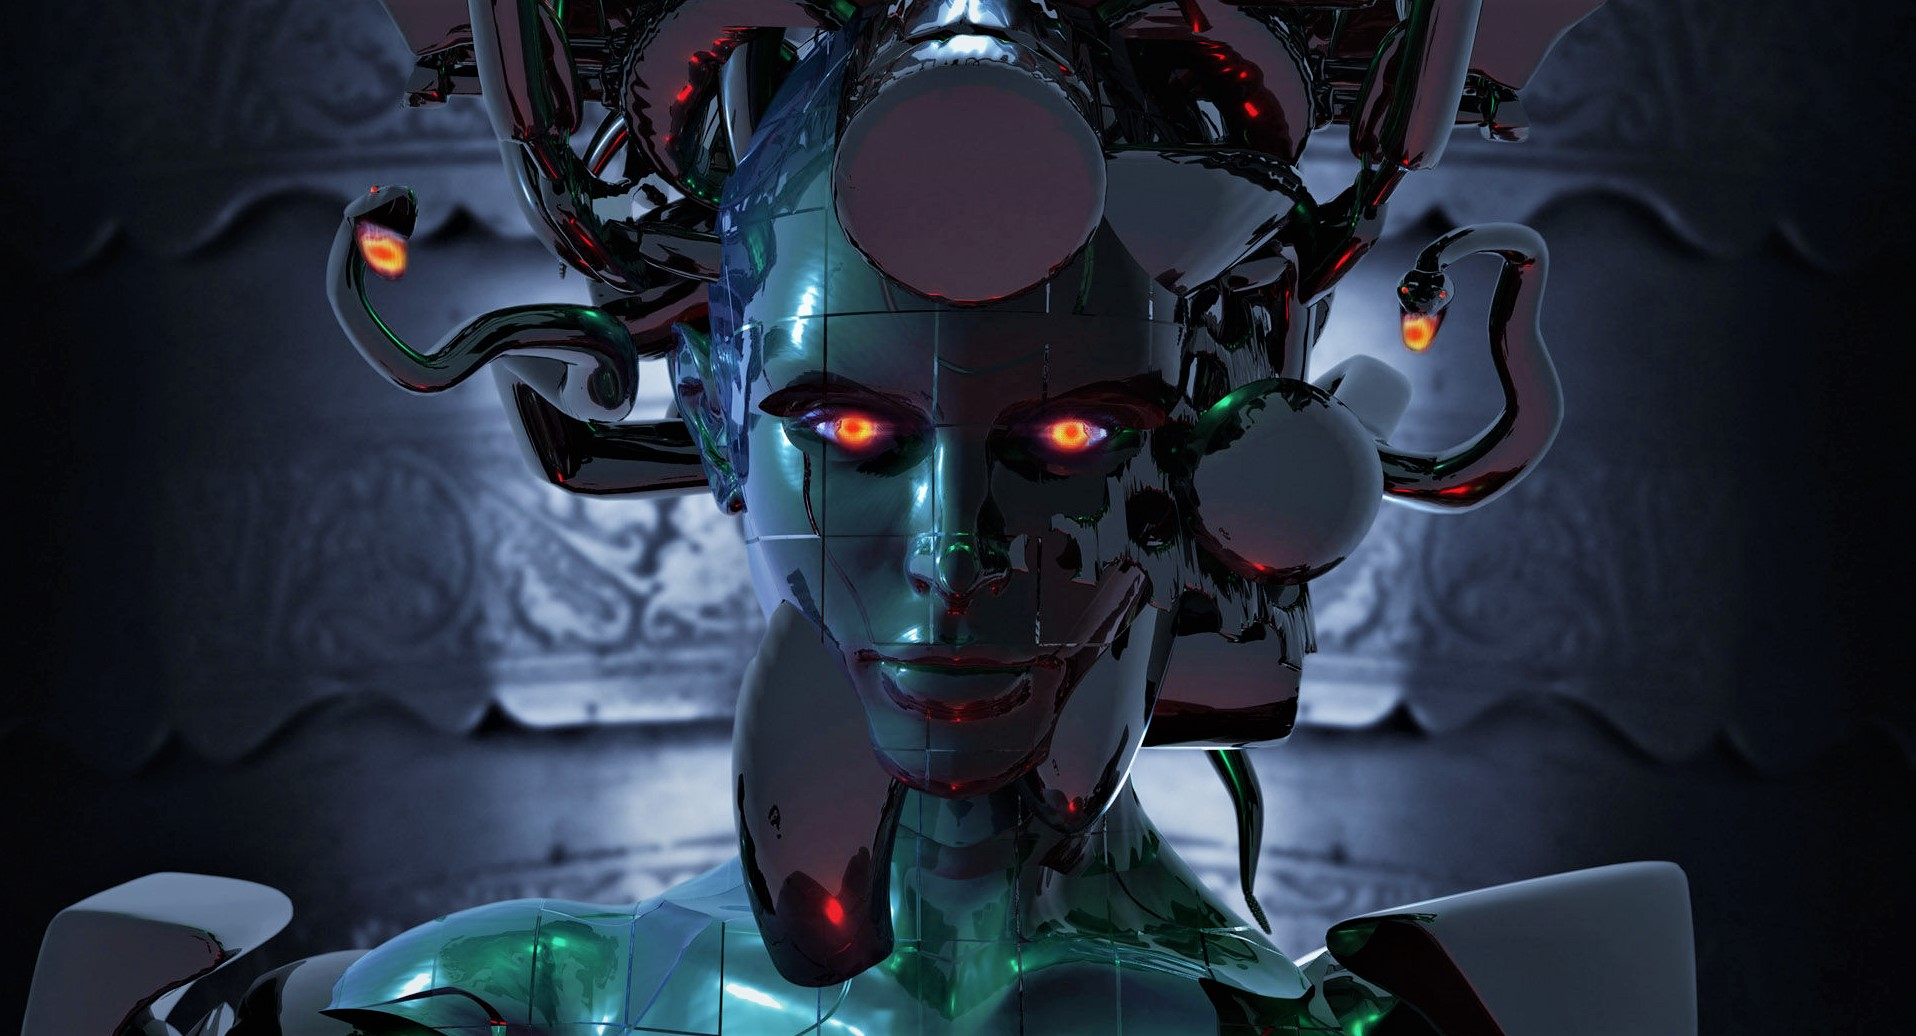 Alien Robots: The real visitors to Earth? 35